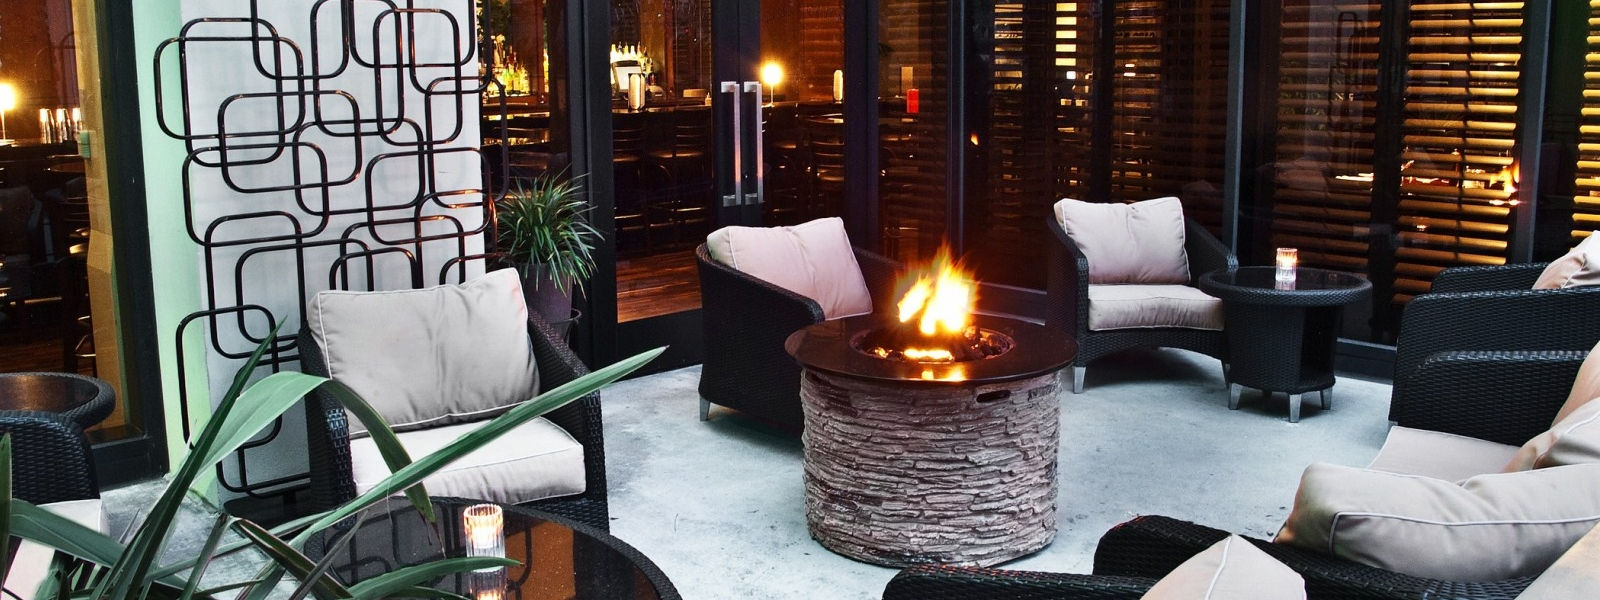 The Westin Los Angeles Airport Amenities -  hotel firepit